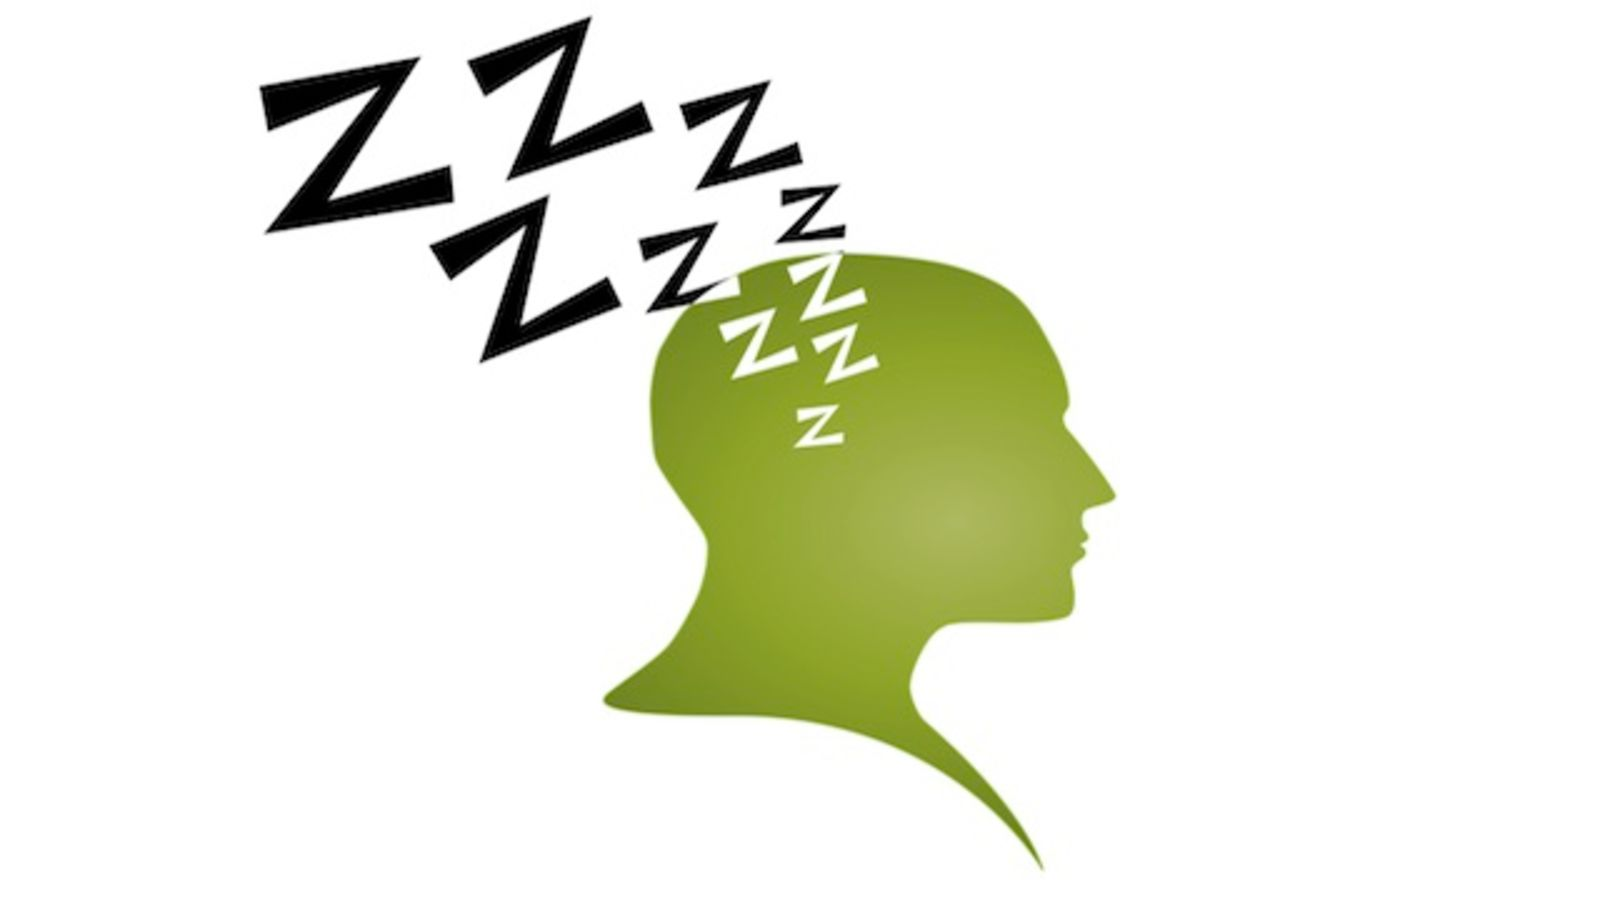 Have a great rest of your day clipart clip royalty free library The Science of the Perfect Nap clip royalty free library